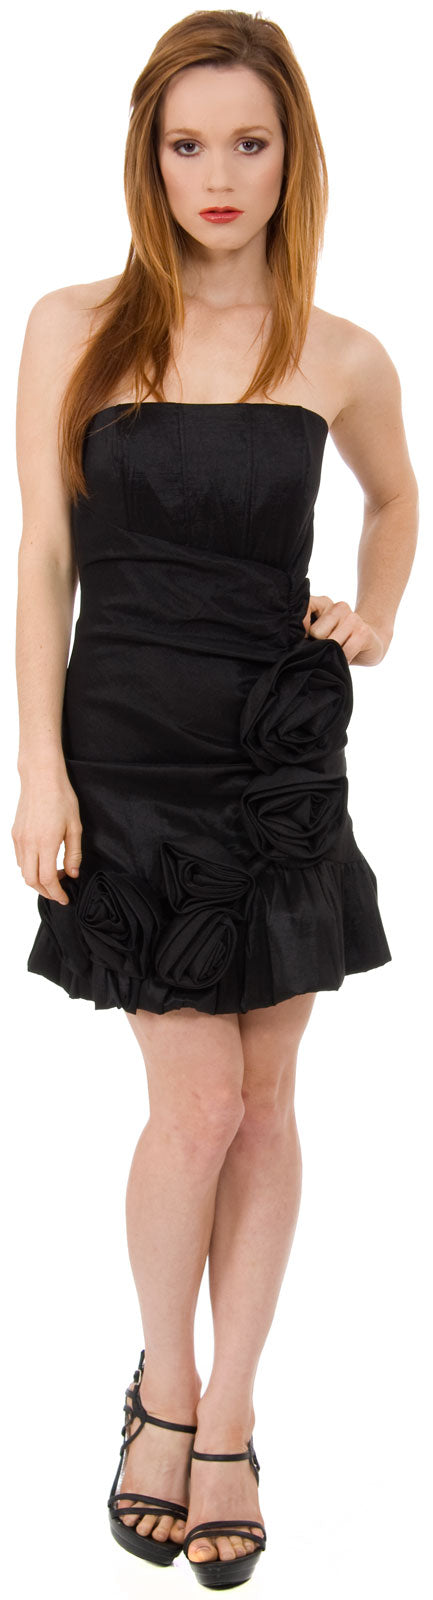 Main image of Strapless Fitted Short Party Dress With Floral Appliques